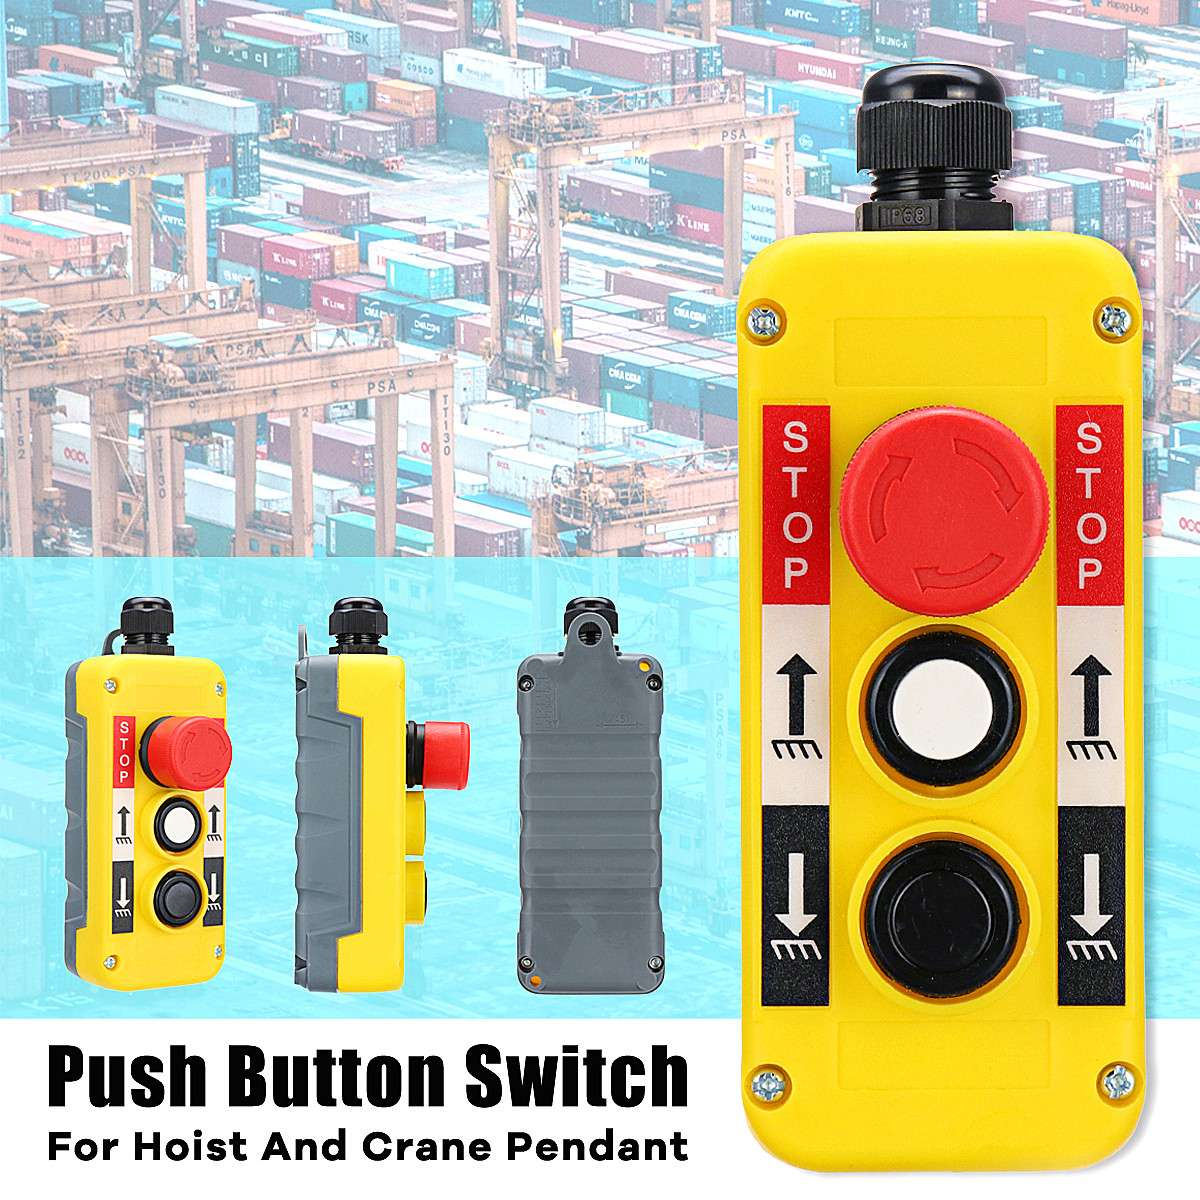 1PC 2 Buttons with Emergency Stop <font><b>Hoist</b></font> And Crane Pendant <font><b>Control</b></font> Station Hand <font><b>Remote</b></font> Rainproof Push Button Switch image